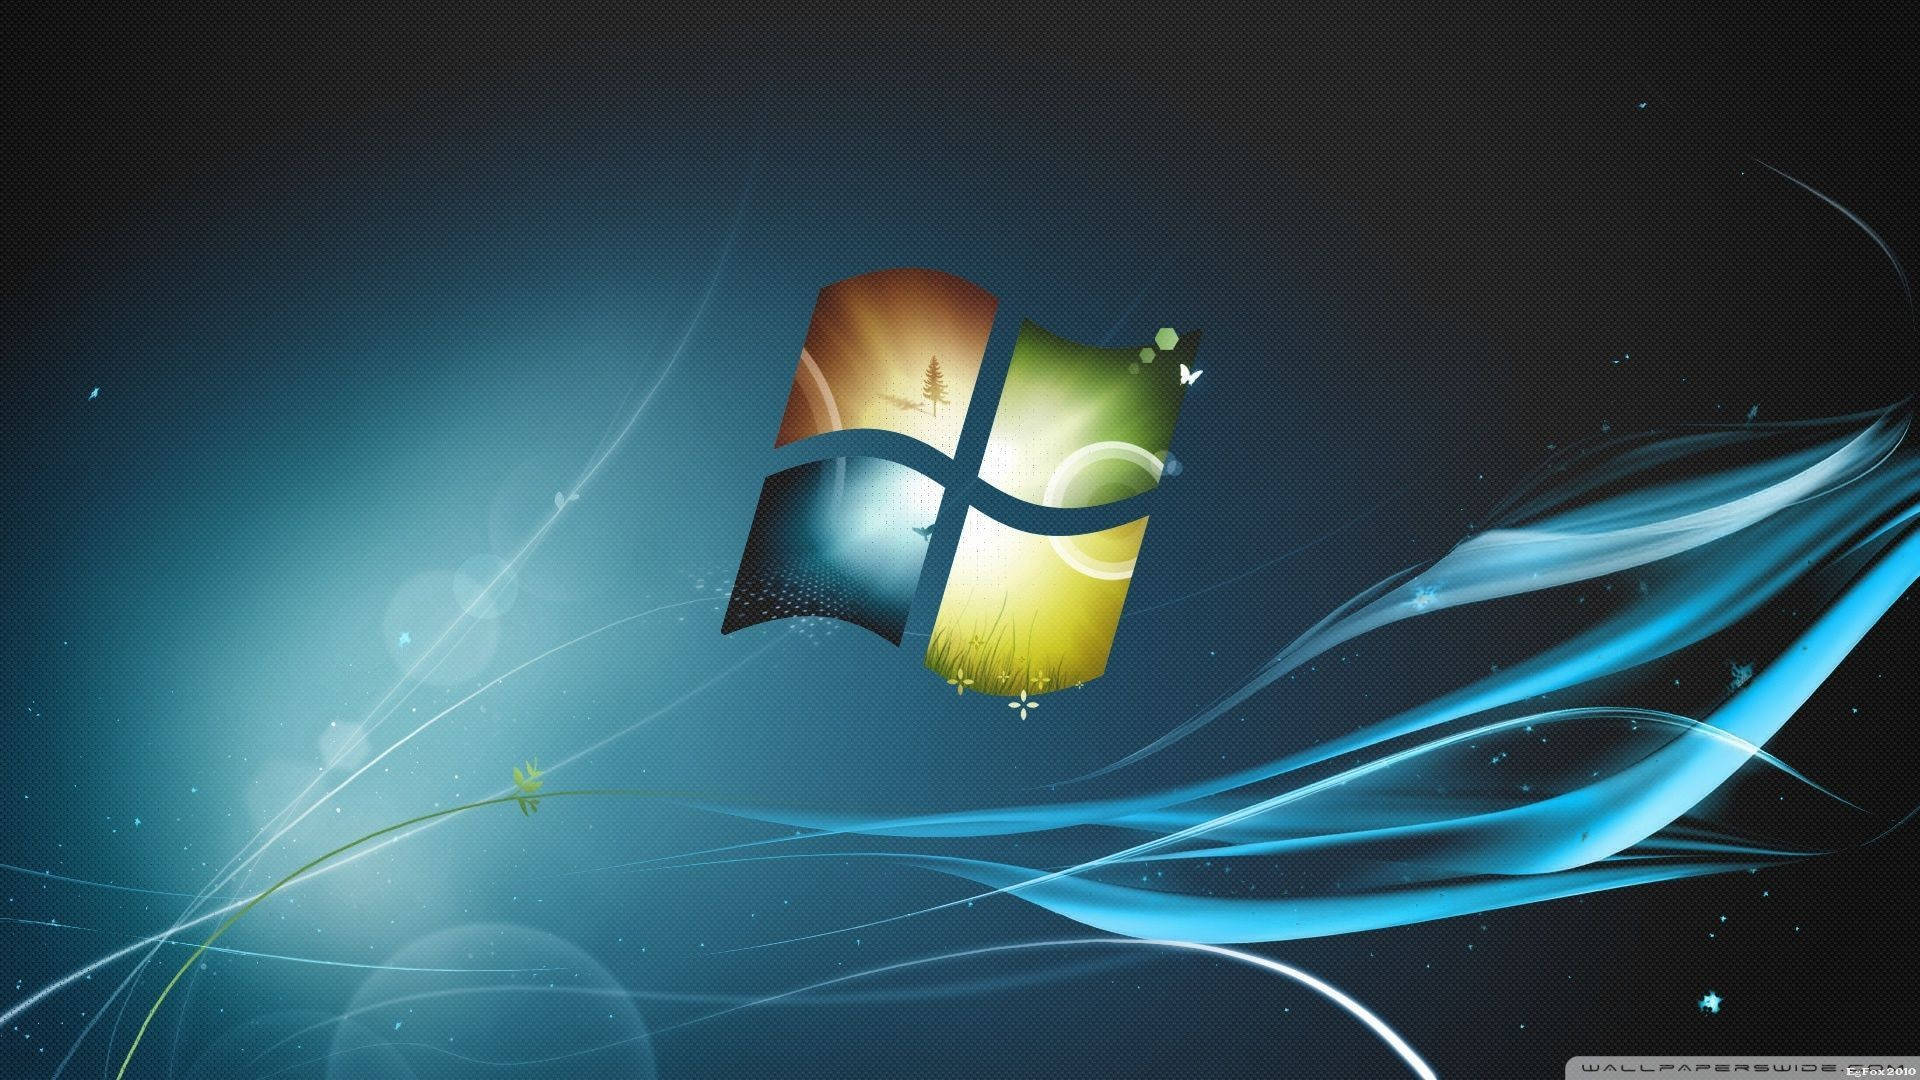 Windows 7 Hd Wallpapers 83 Background Pictures